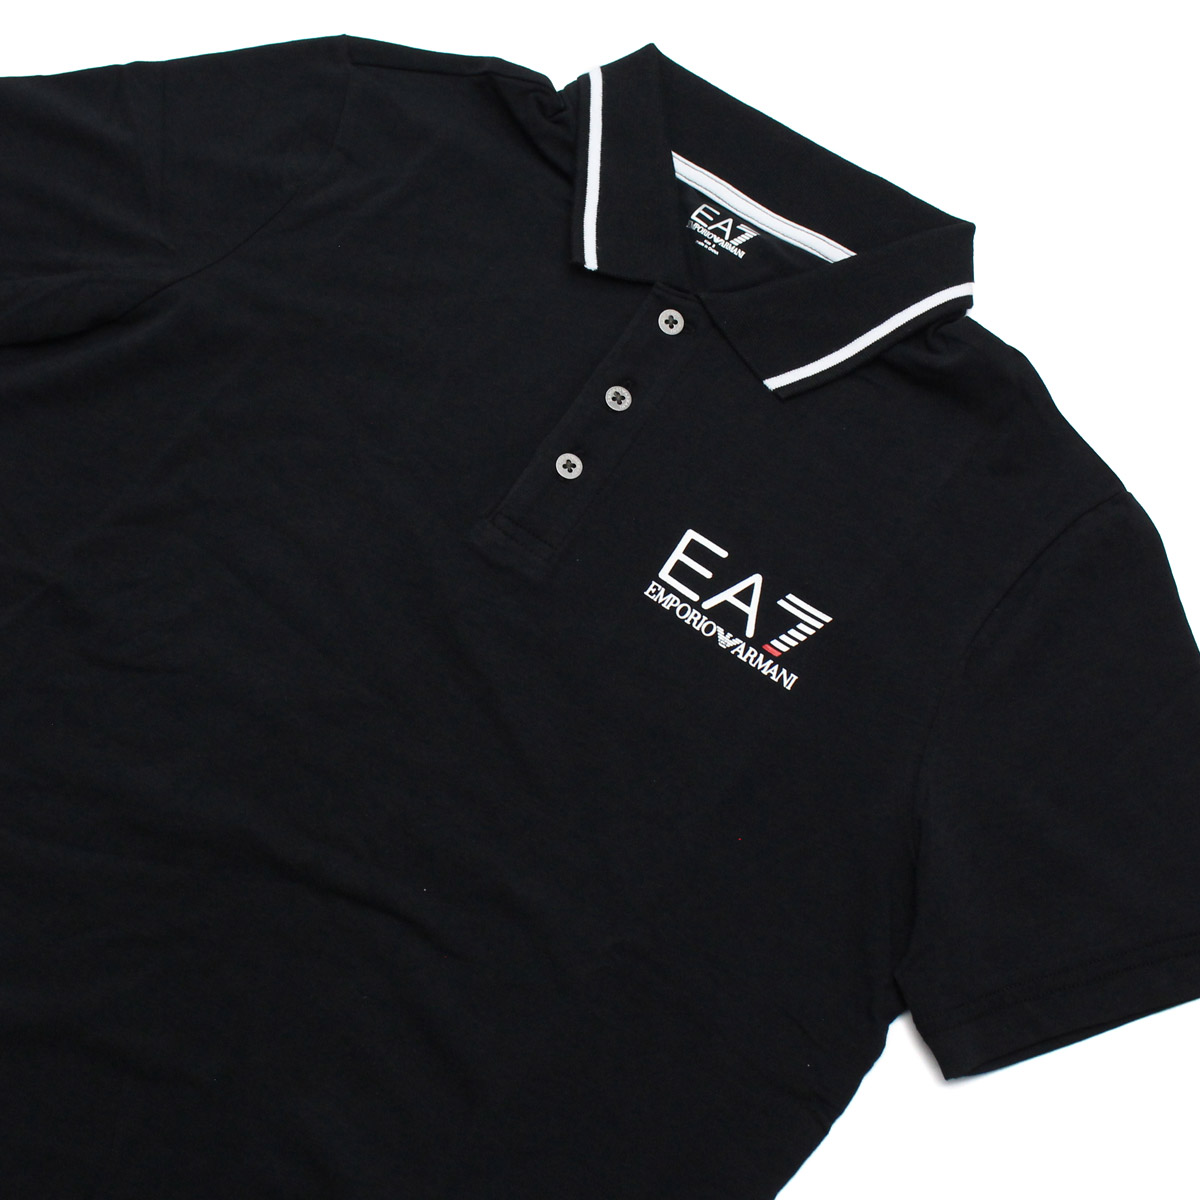 ea7 black polo shirt